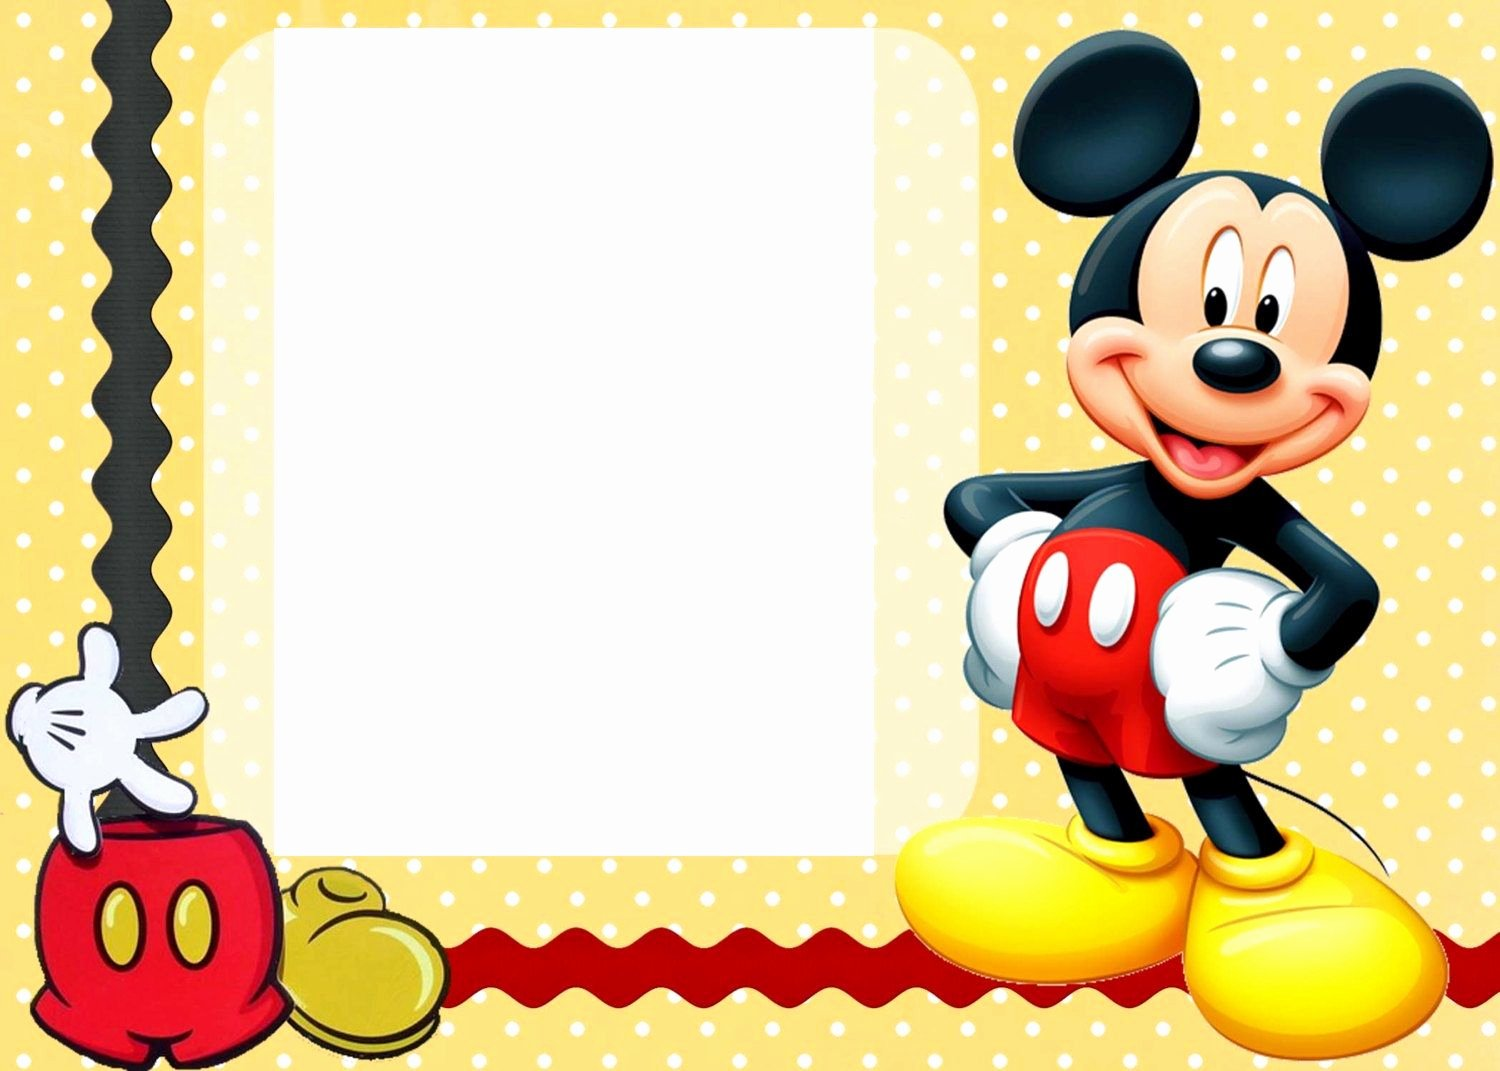 Mickey Mouse Invitation Card Luxury 25 Incredible Mickey Mouse Birthday Invitations